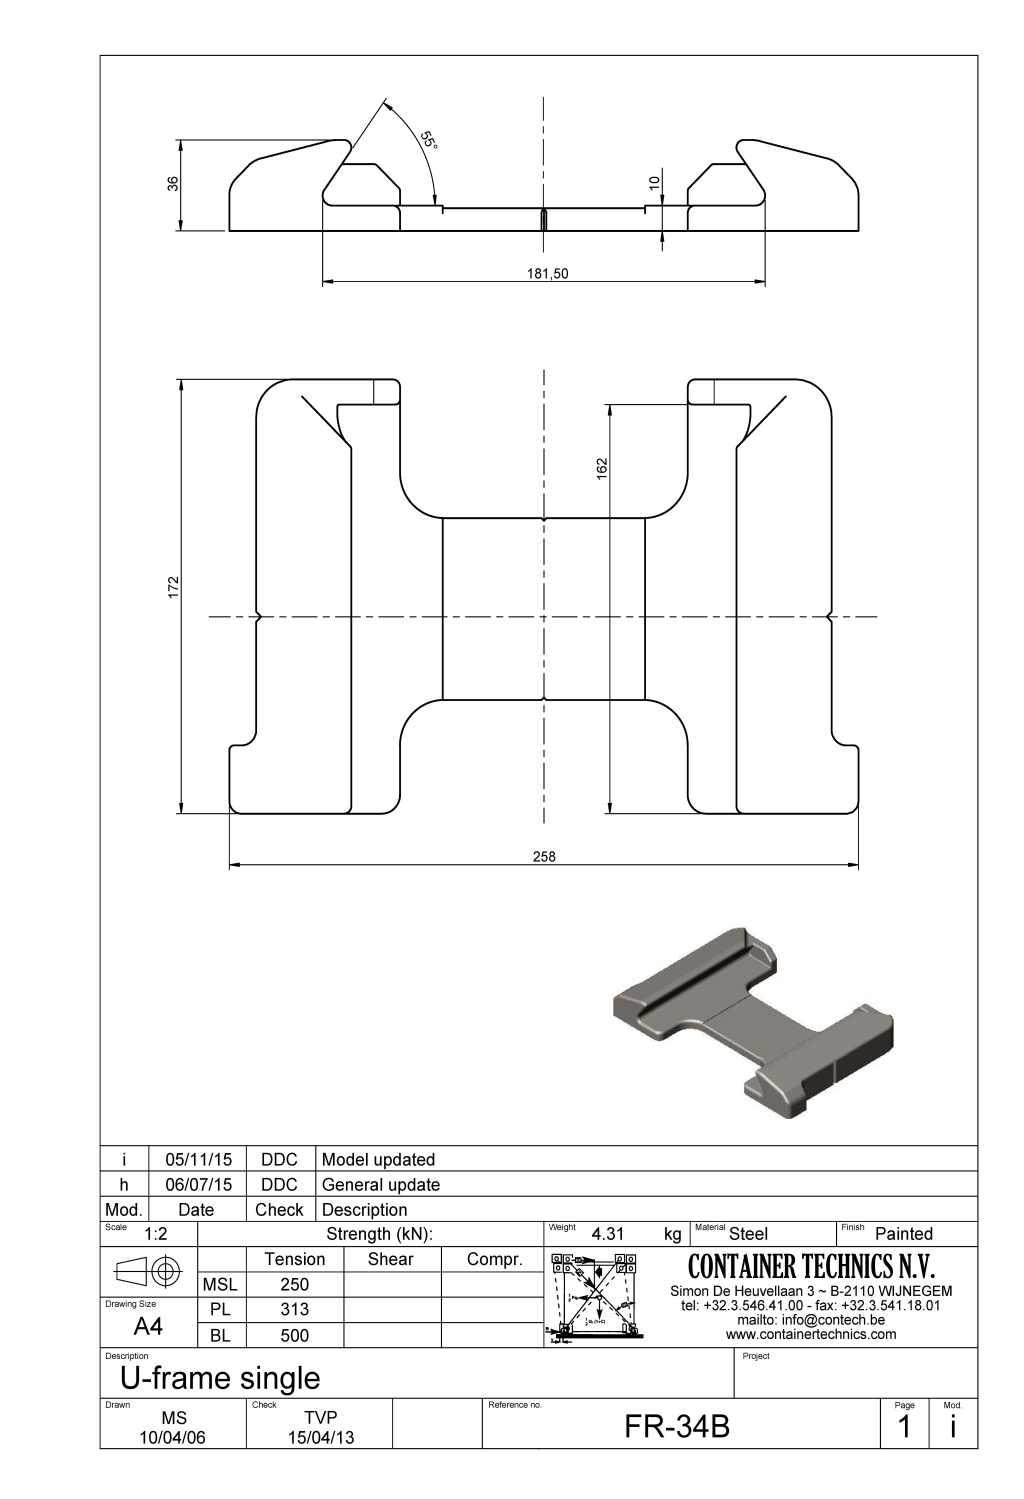 FR-34B RAISED SINGLE U-FRAME FOUNDATION 55°